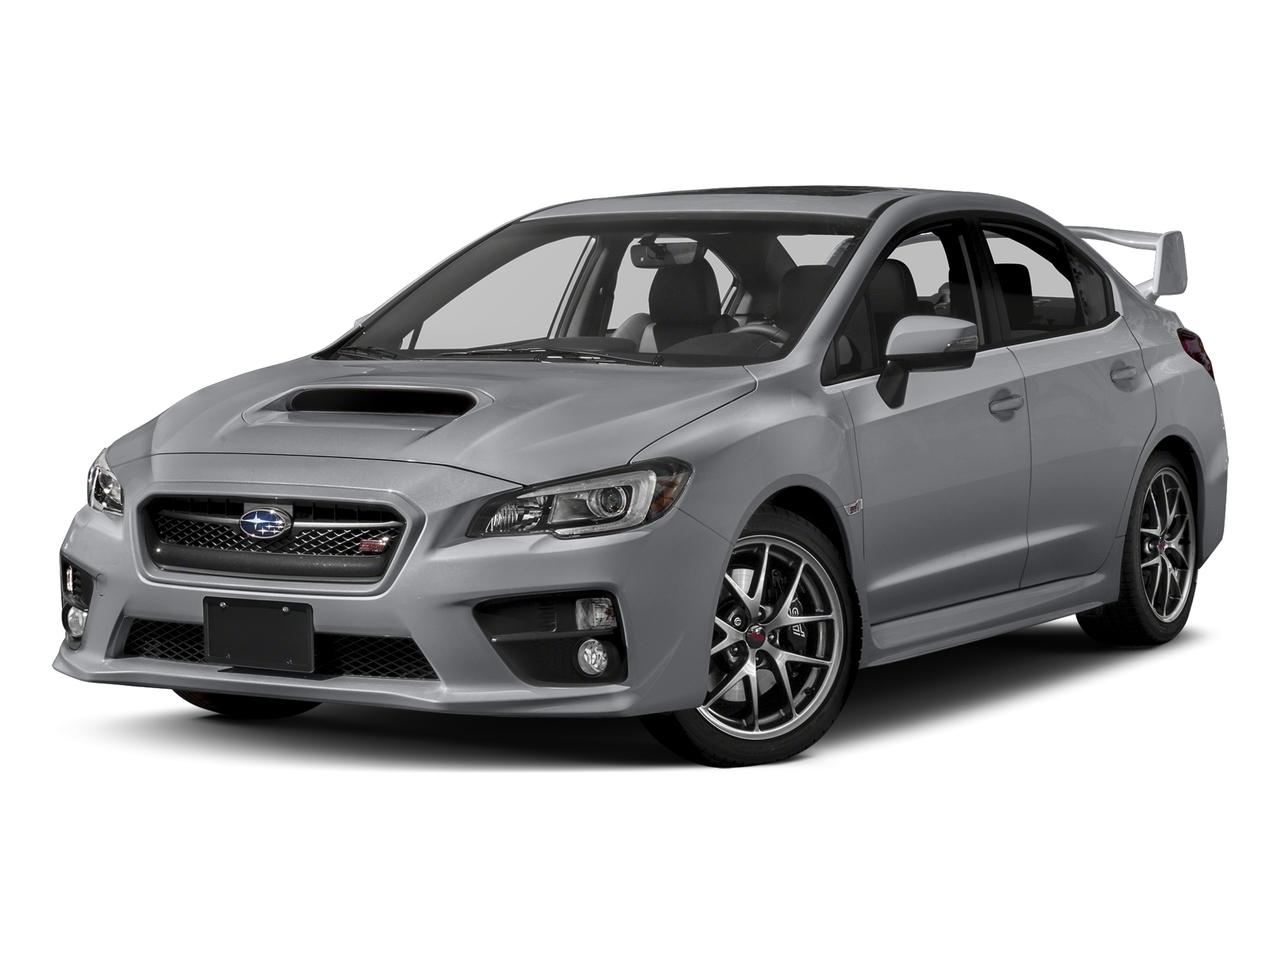 2016 Subaru WRX STI Vehicle Photo in Killeen, TX 76541